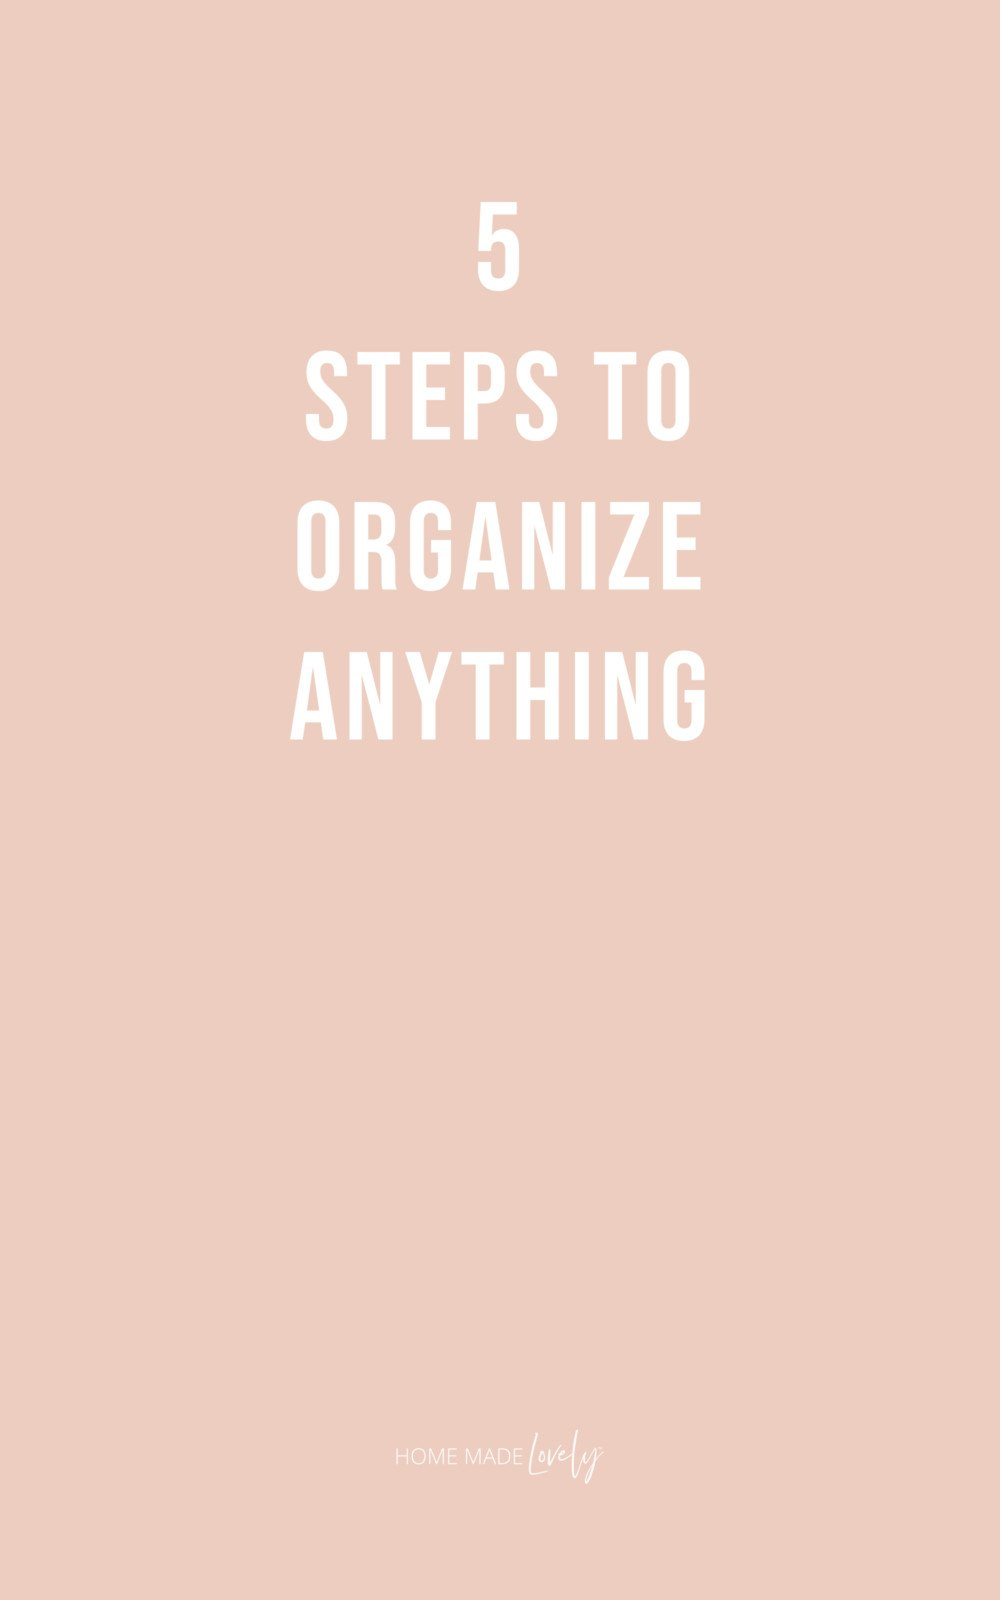 5 steps to organize anything text on pink bg